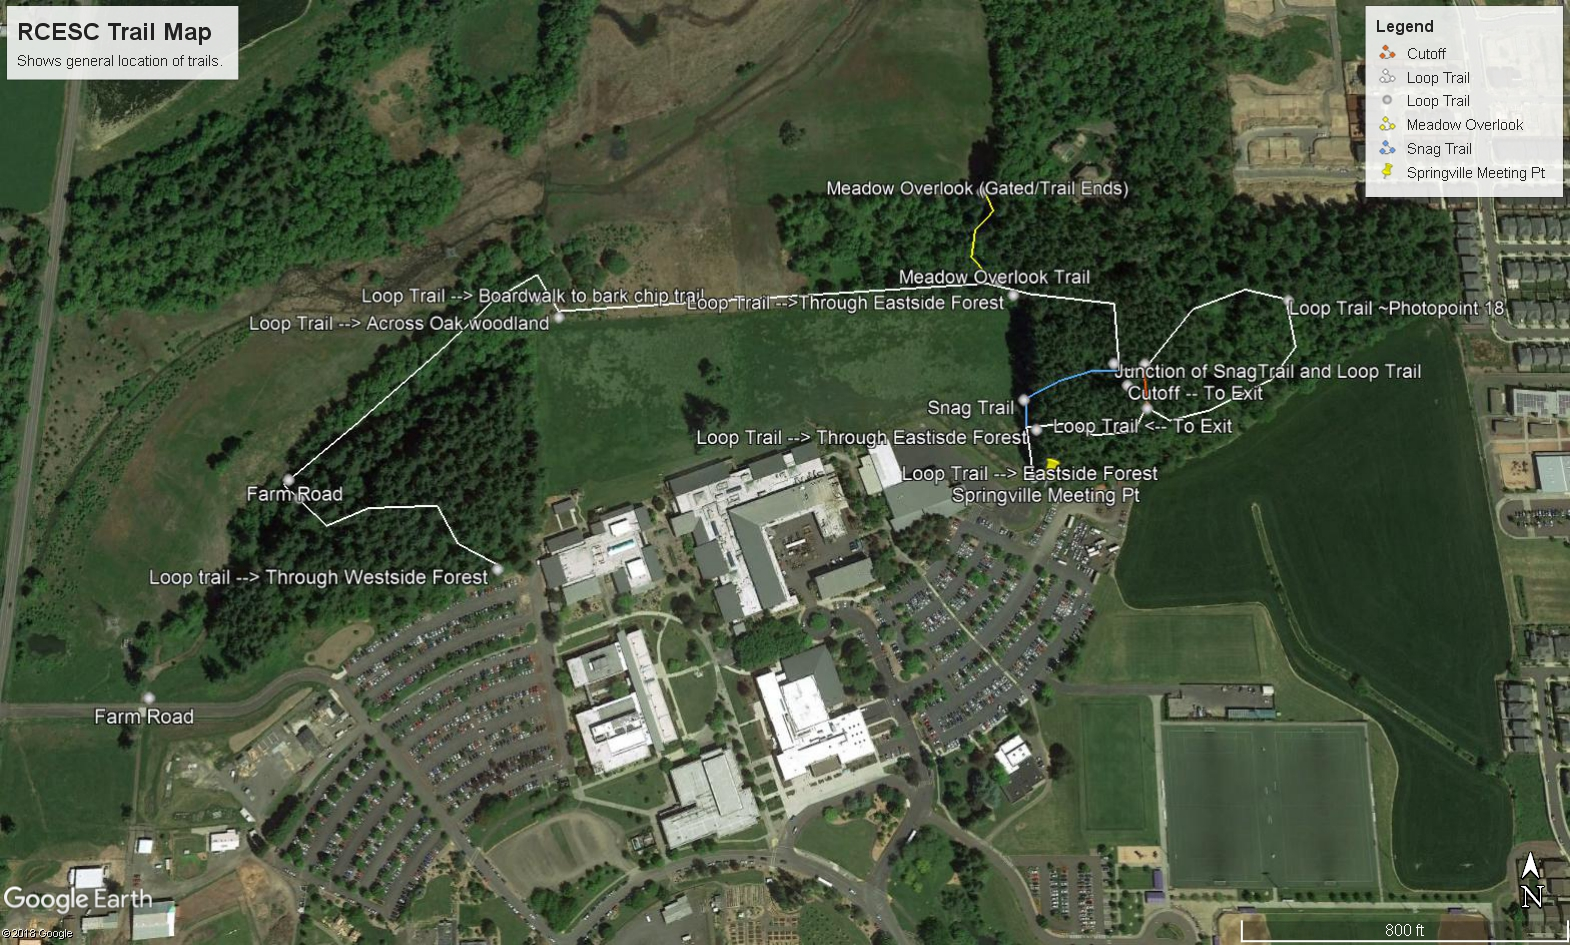 Aerial photo of RCESC with rough outline of trails